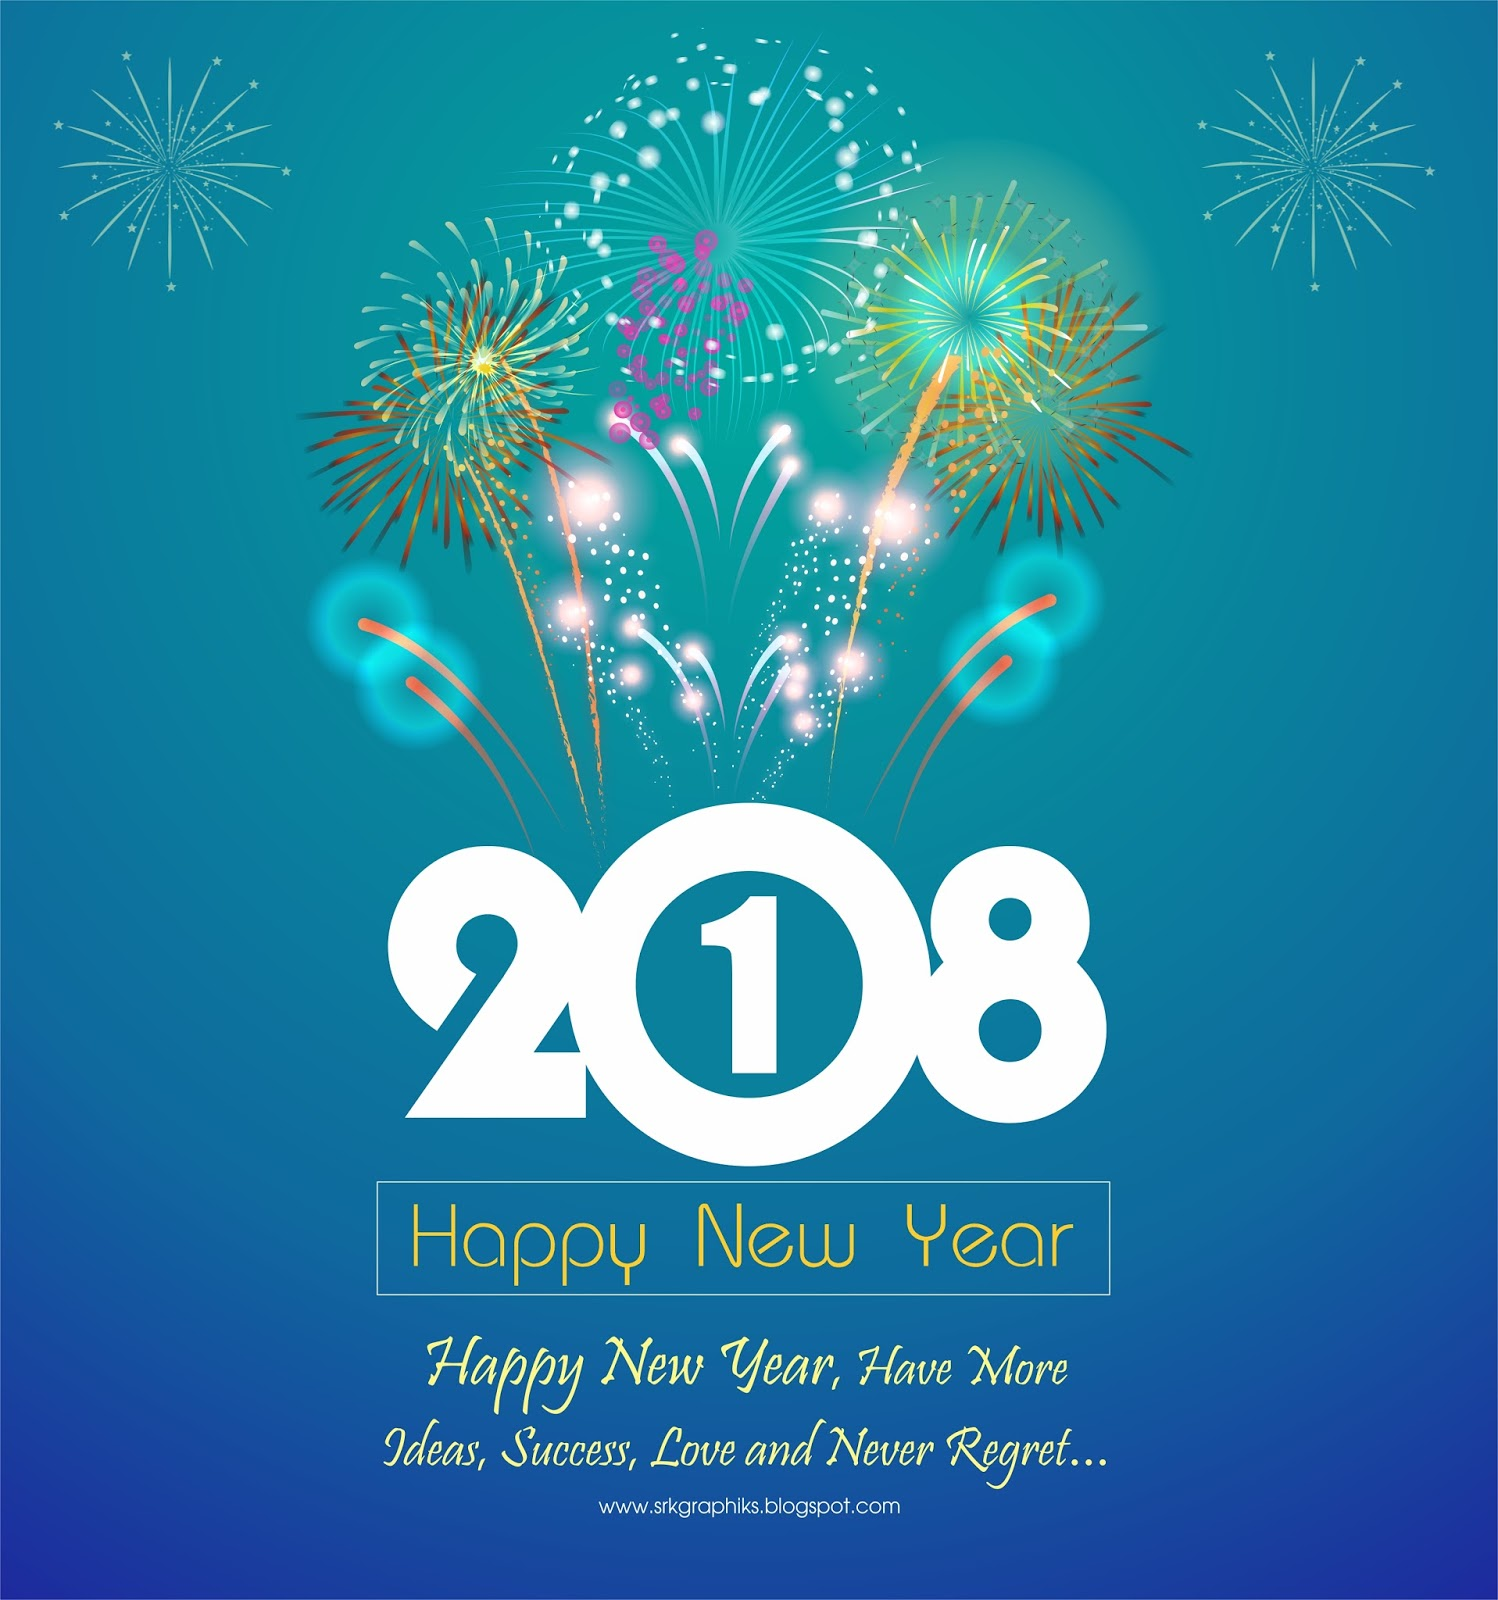 Latest Happy New Year 2018 Greetings Wtih Hd Wallpapers In Telugu